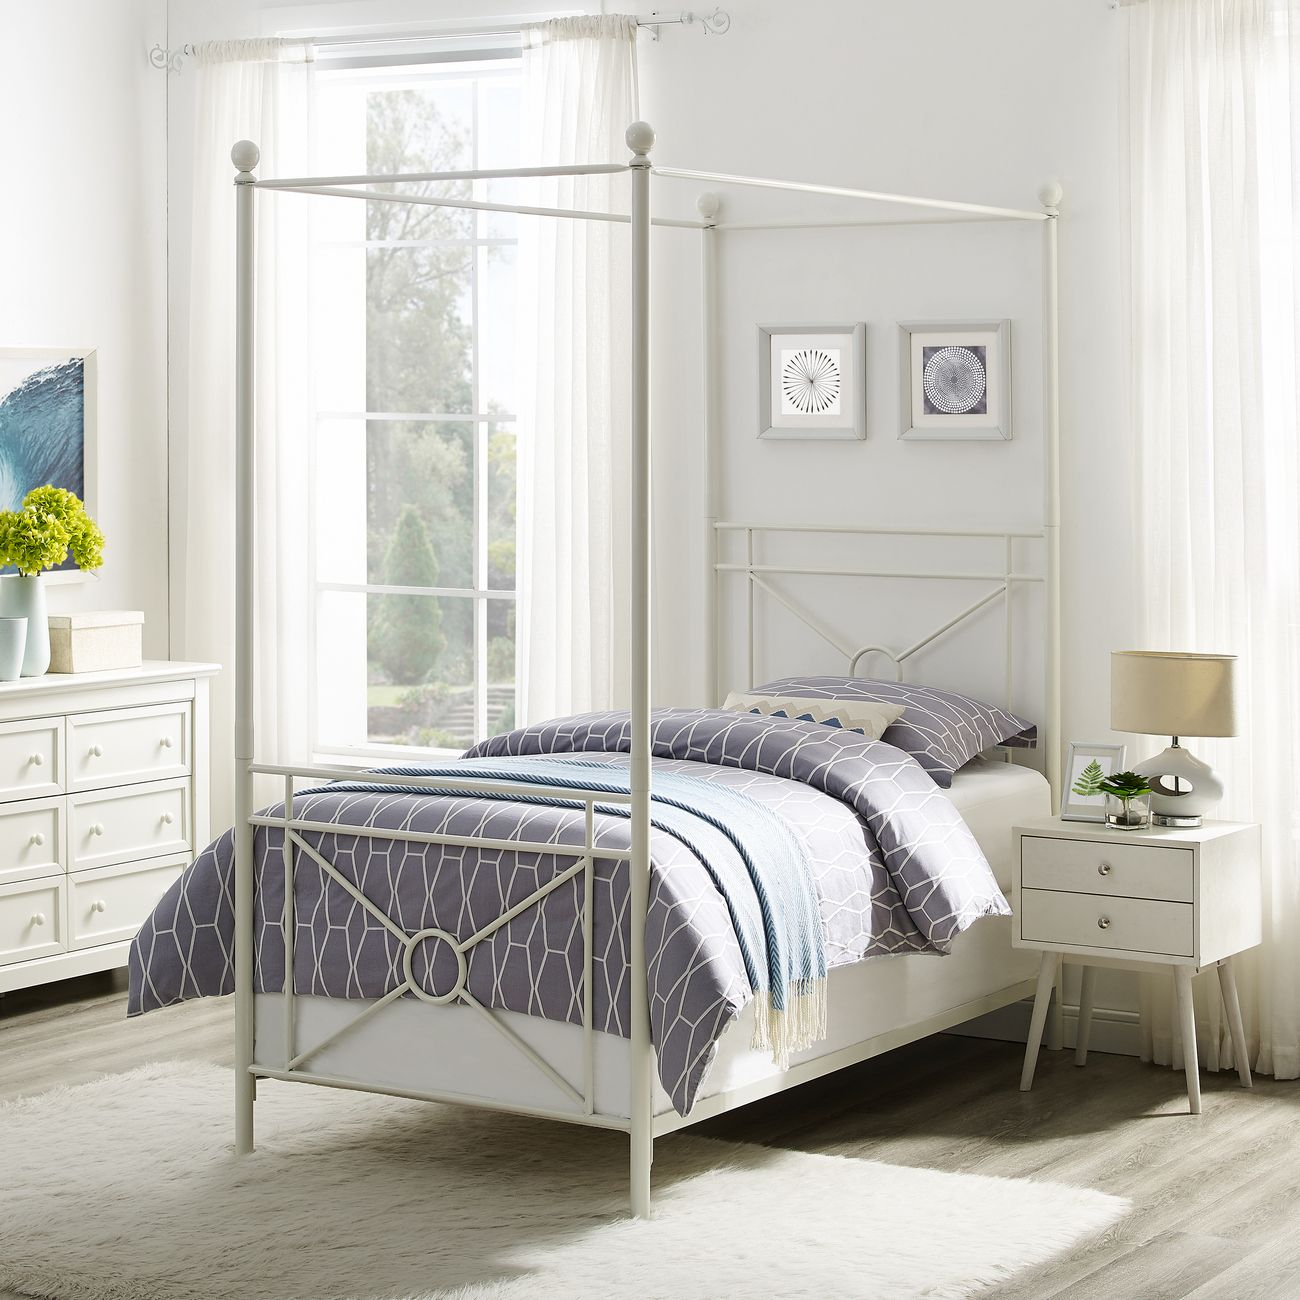 - Montgomery Twin Canopy Bed In White - Crosley KF713002WH